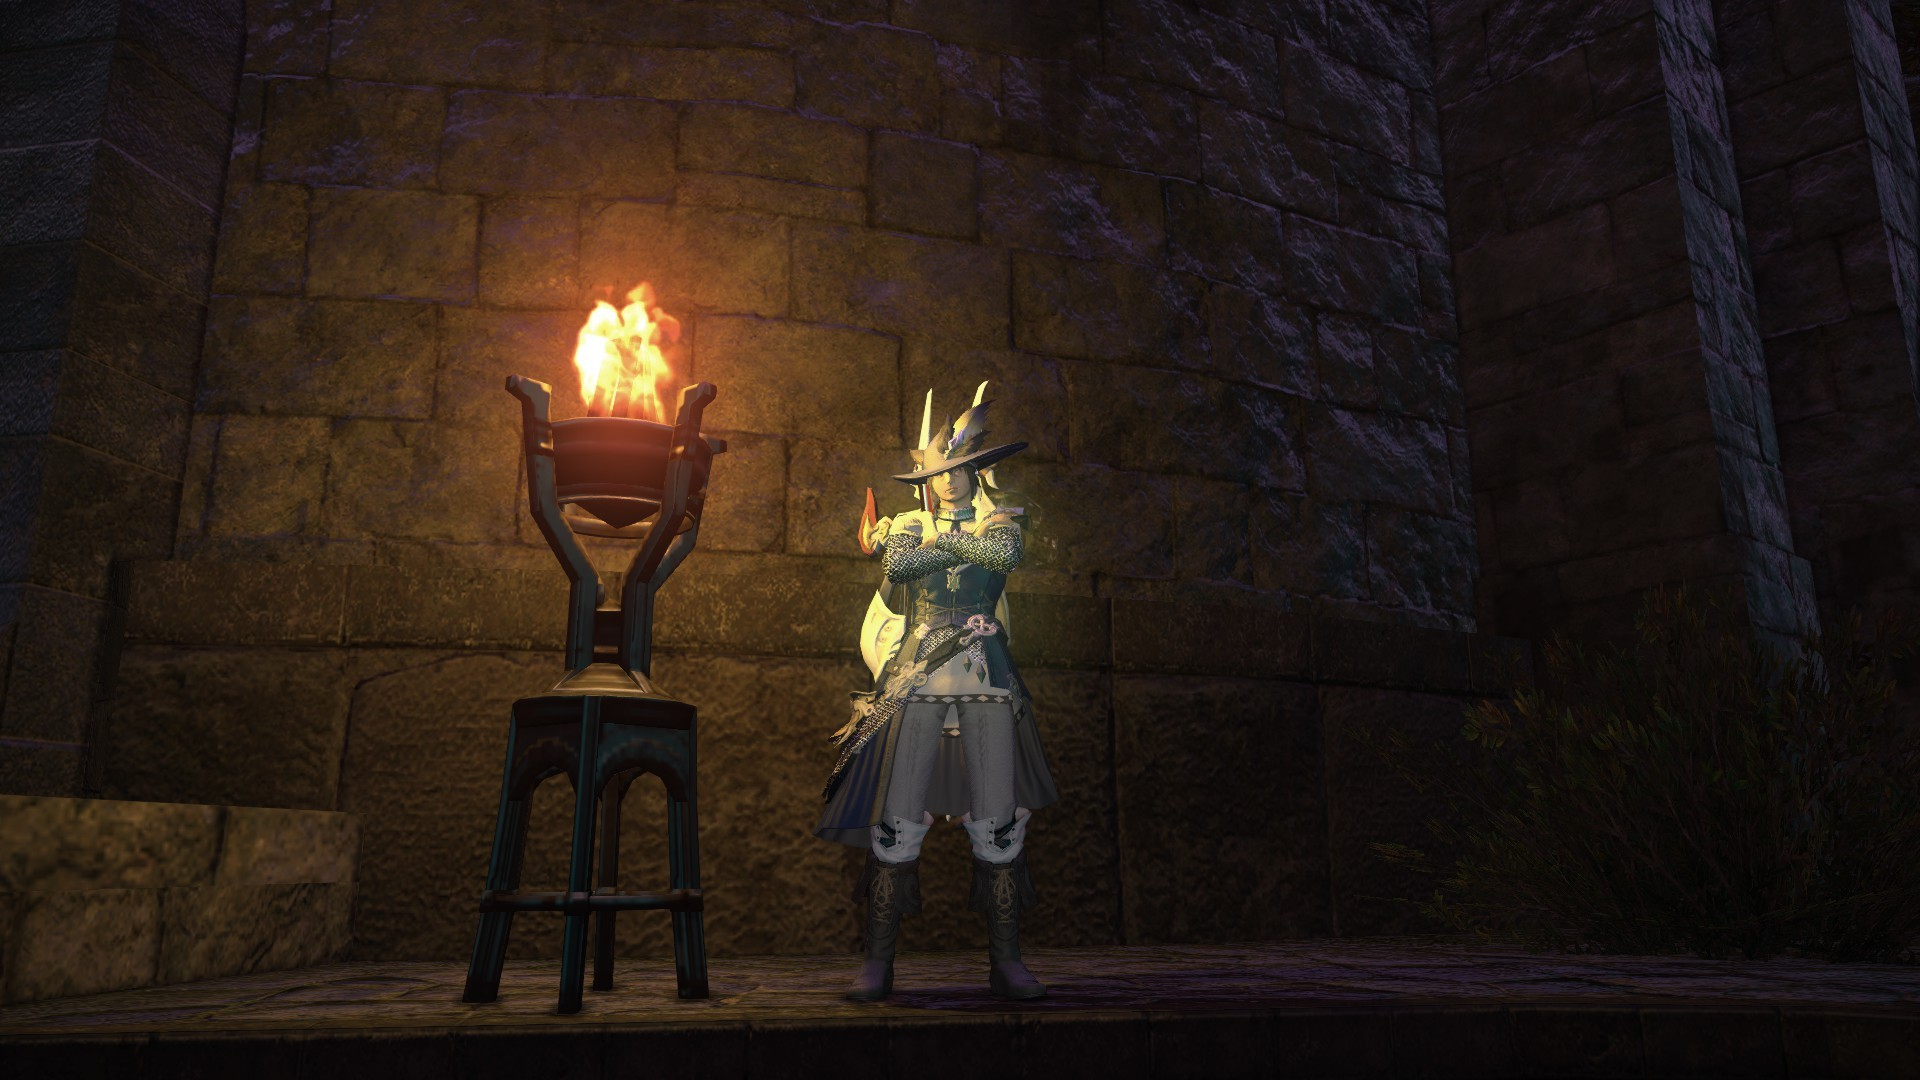 Final Fantasy XIV: A Realm Reborn - New armor for my bard! Just returned and having a blast